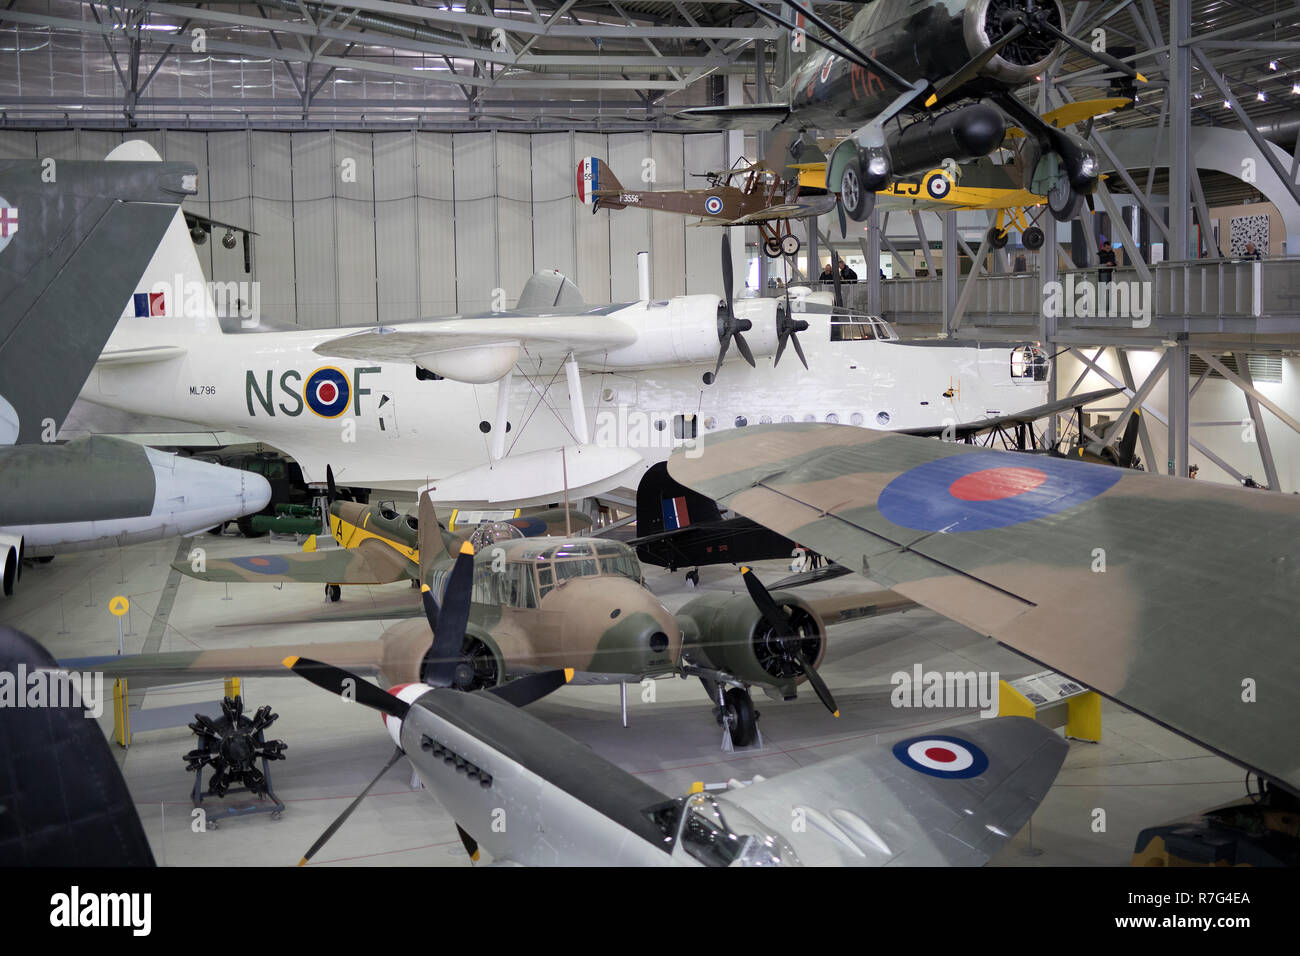 Part of Duxford Air museum,Duxford, Cambridgeshire,uk - Stock Image